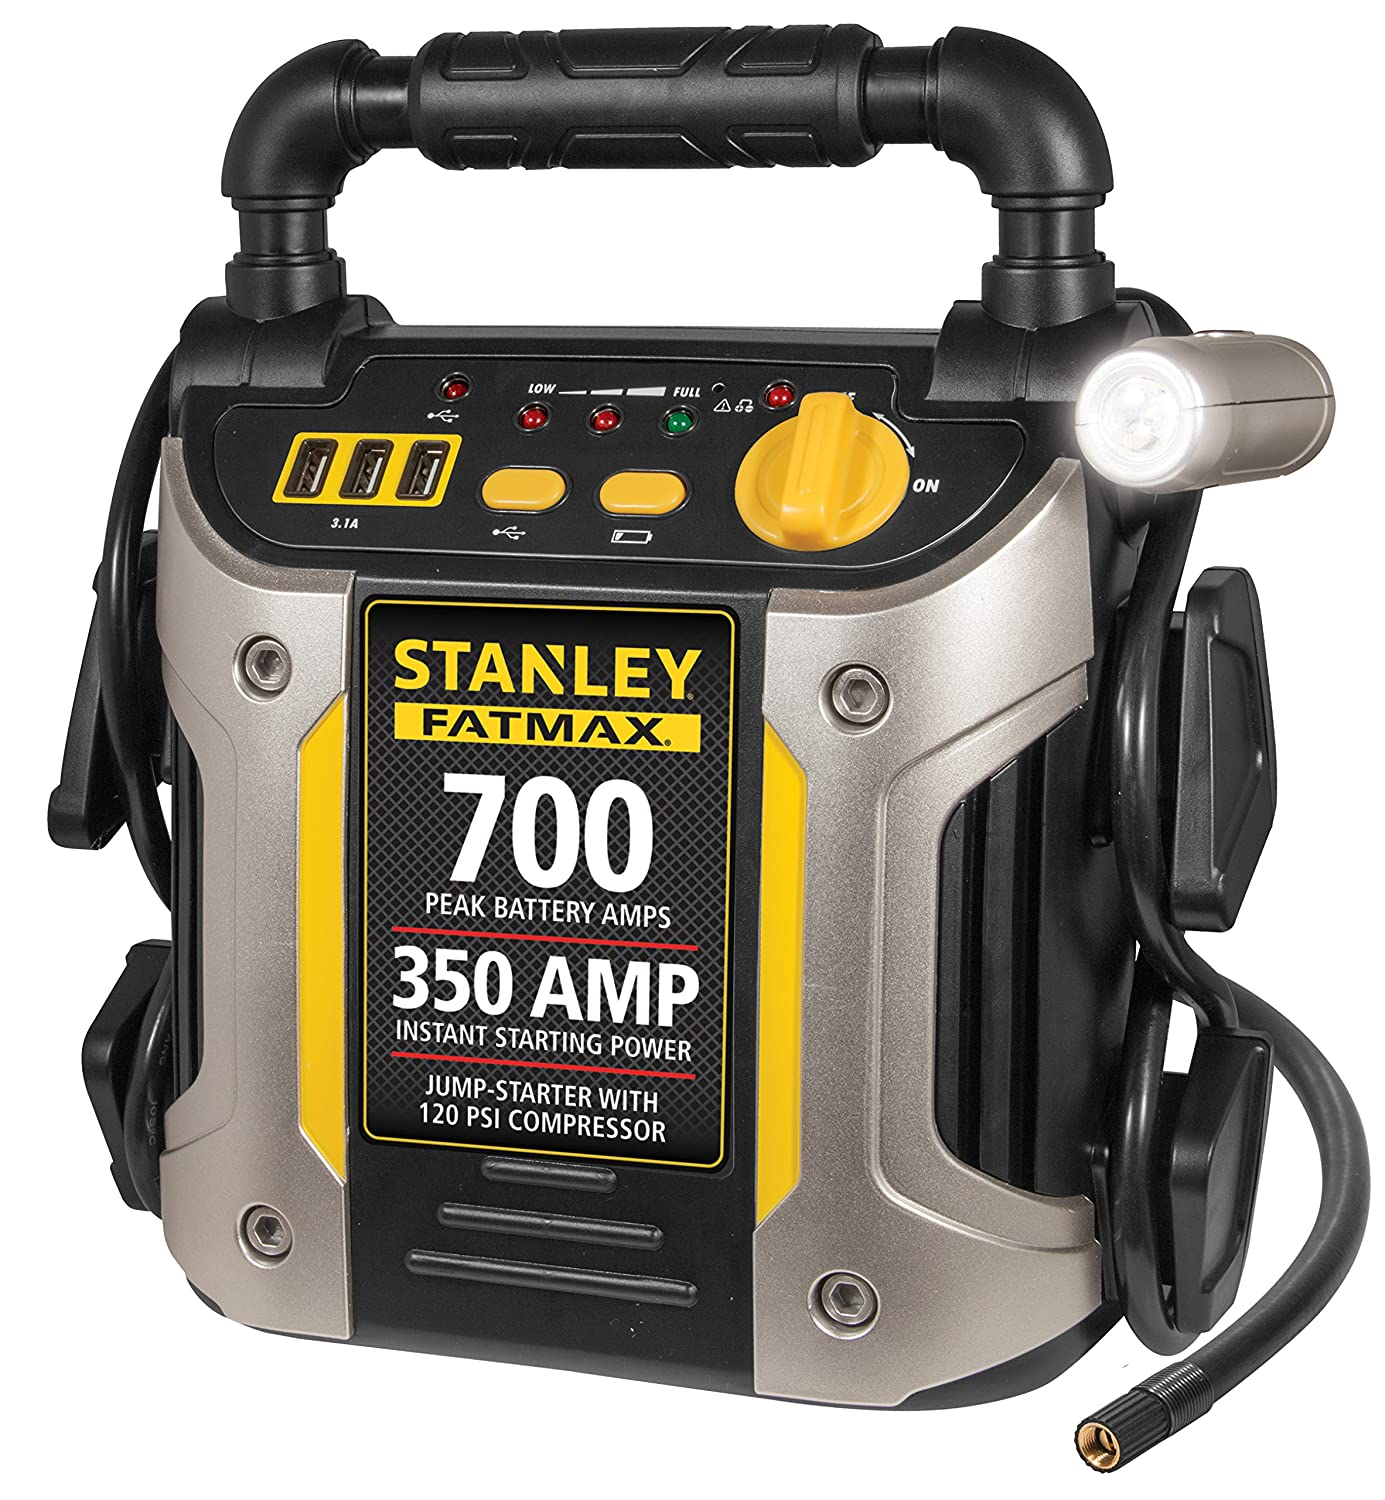 Stanley Fatmax J7cs Jump Starter 700 Peak 350 Instant Prime Garbage Disposal Power Supply Cord Gray 6feet Walmartcom Amps 120 Psi Air Compressor Automotive